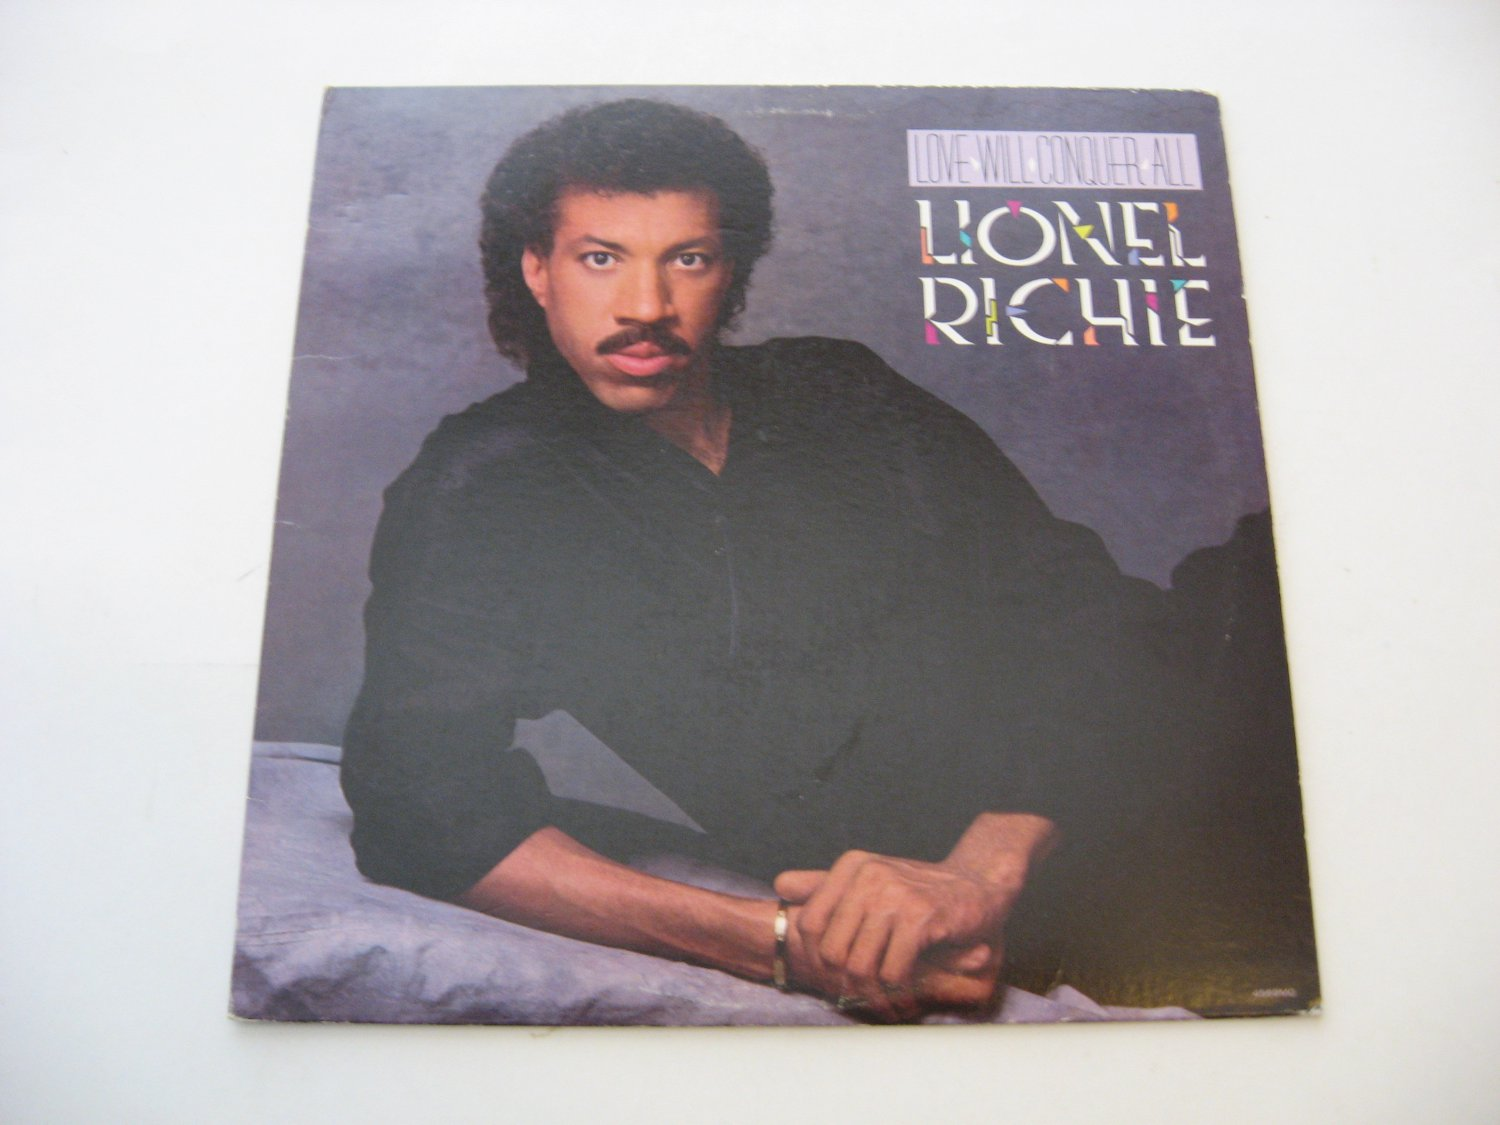 Lionel Richie - Love Will Conquer All - Circa 1986